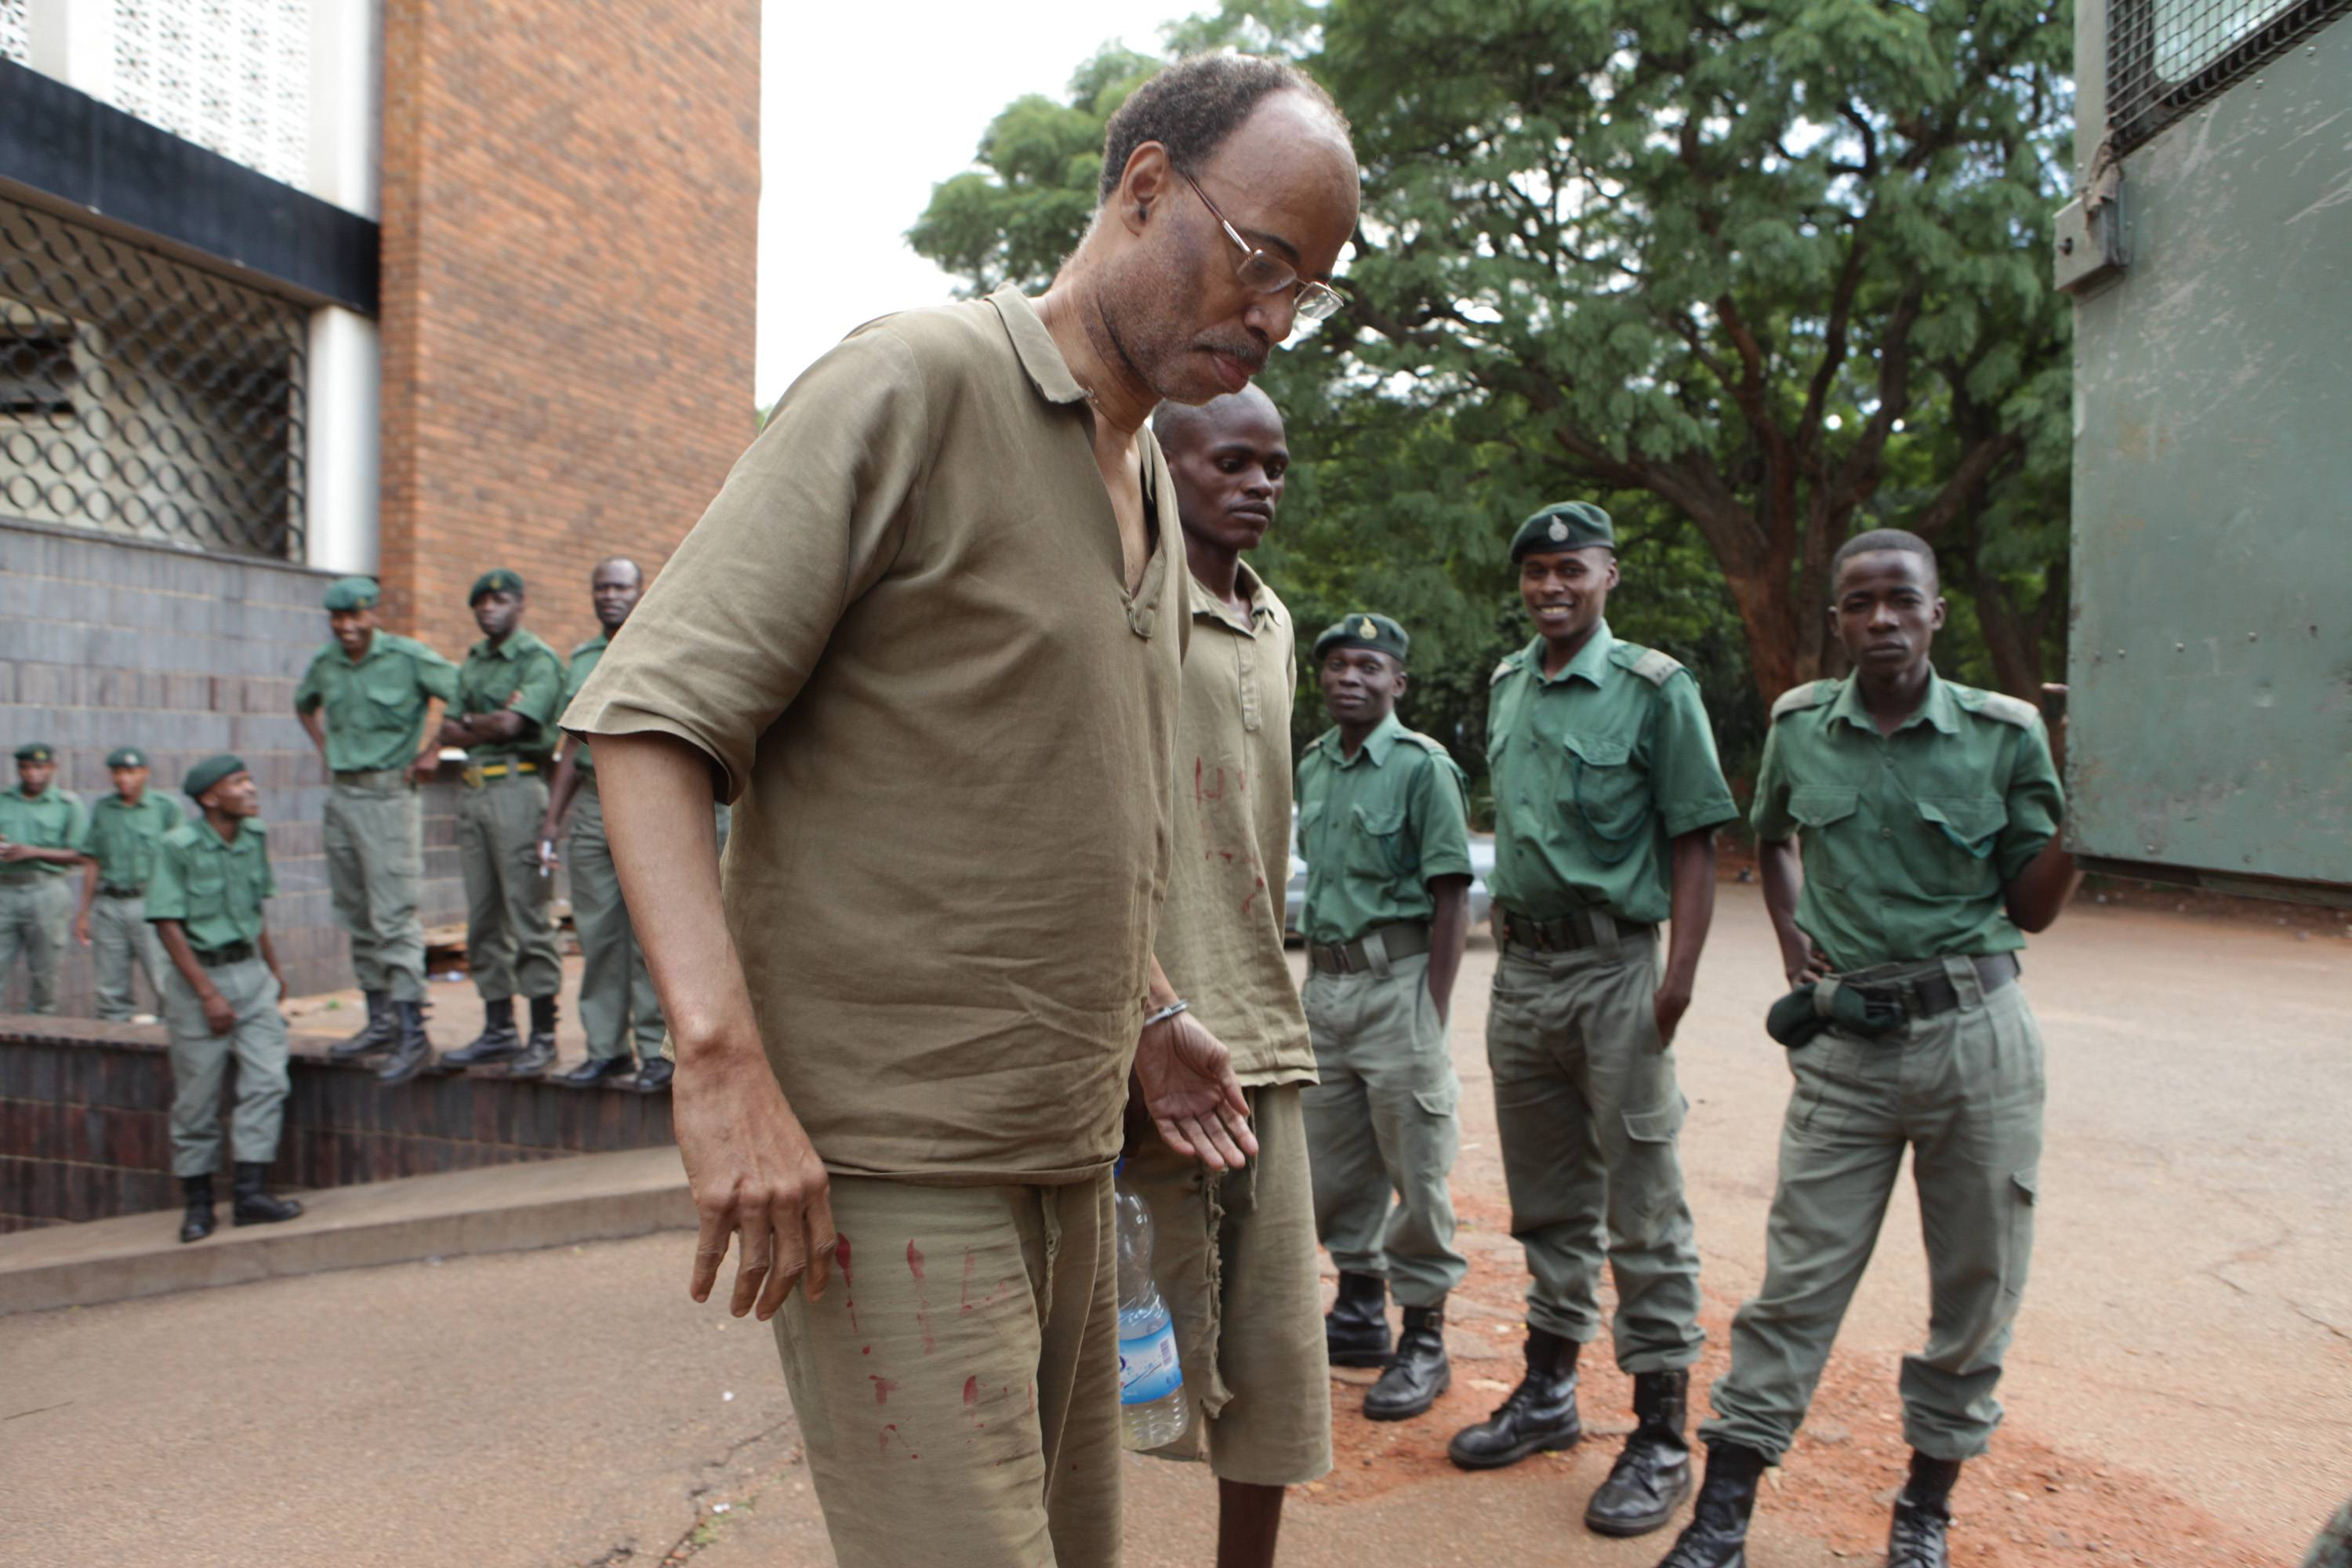 Former U.S. congressman Mel Reynolds, center left, prepares to enter a prison truck Thursday following his court appearance at the magistrates courts in Harare, Zimbabwe. Reynolds was arrested on charges he possessed pornographic material and violating immigration laws.